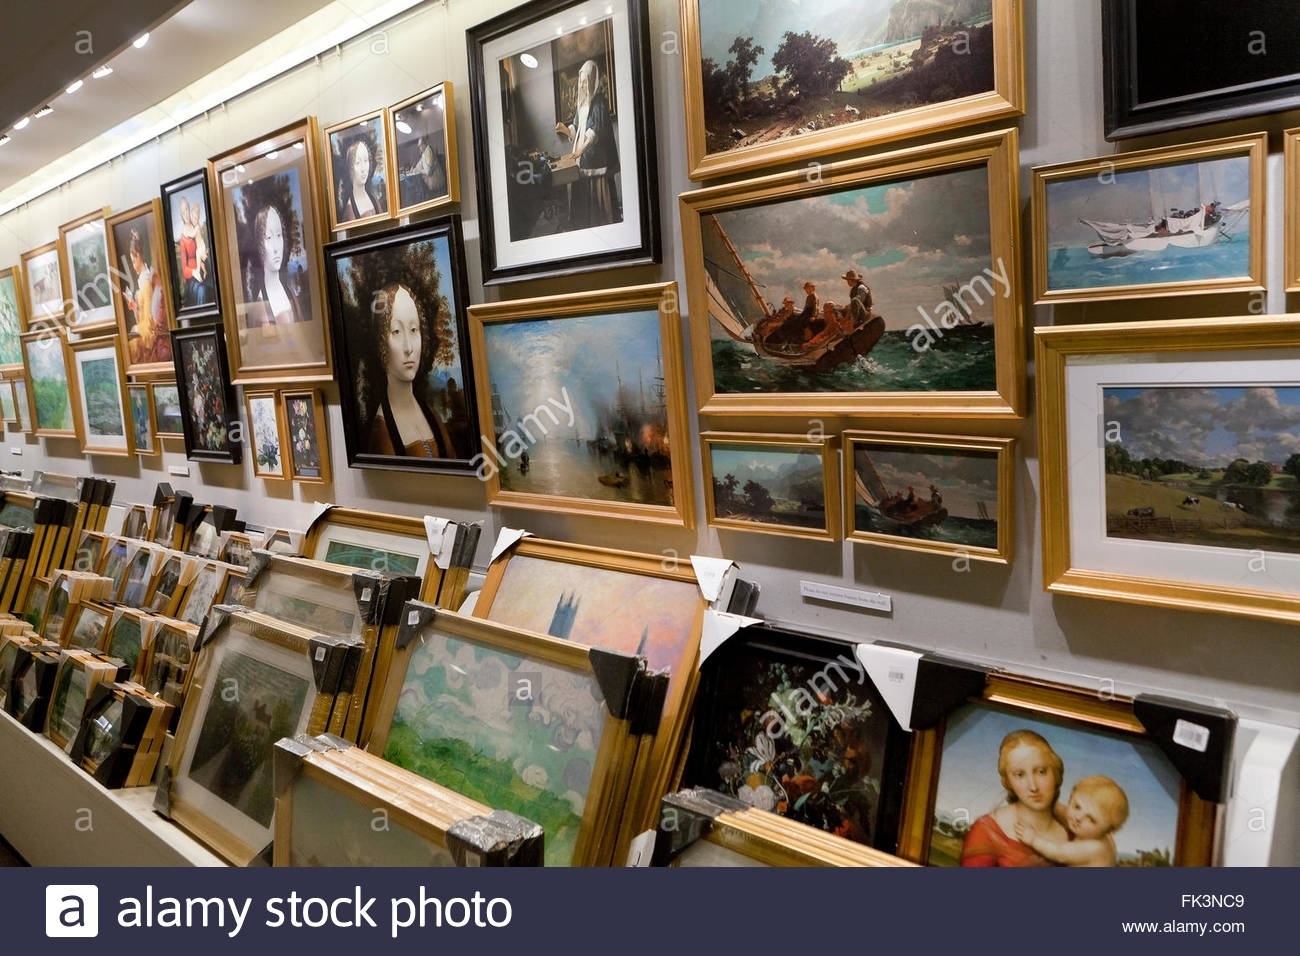 Framed Prints Of Famous Paintings – Usa Stock Photo, Royalty Free Intended For Most Up To Date Famous Art Framed Prints (View 8 of 15)